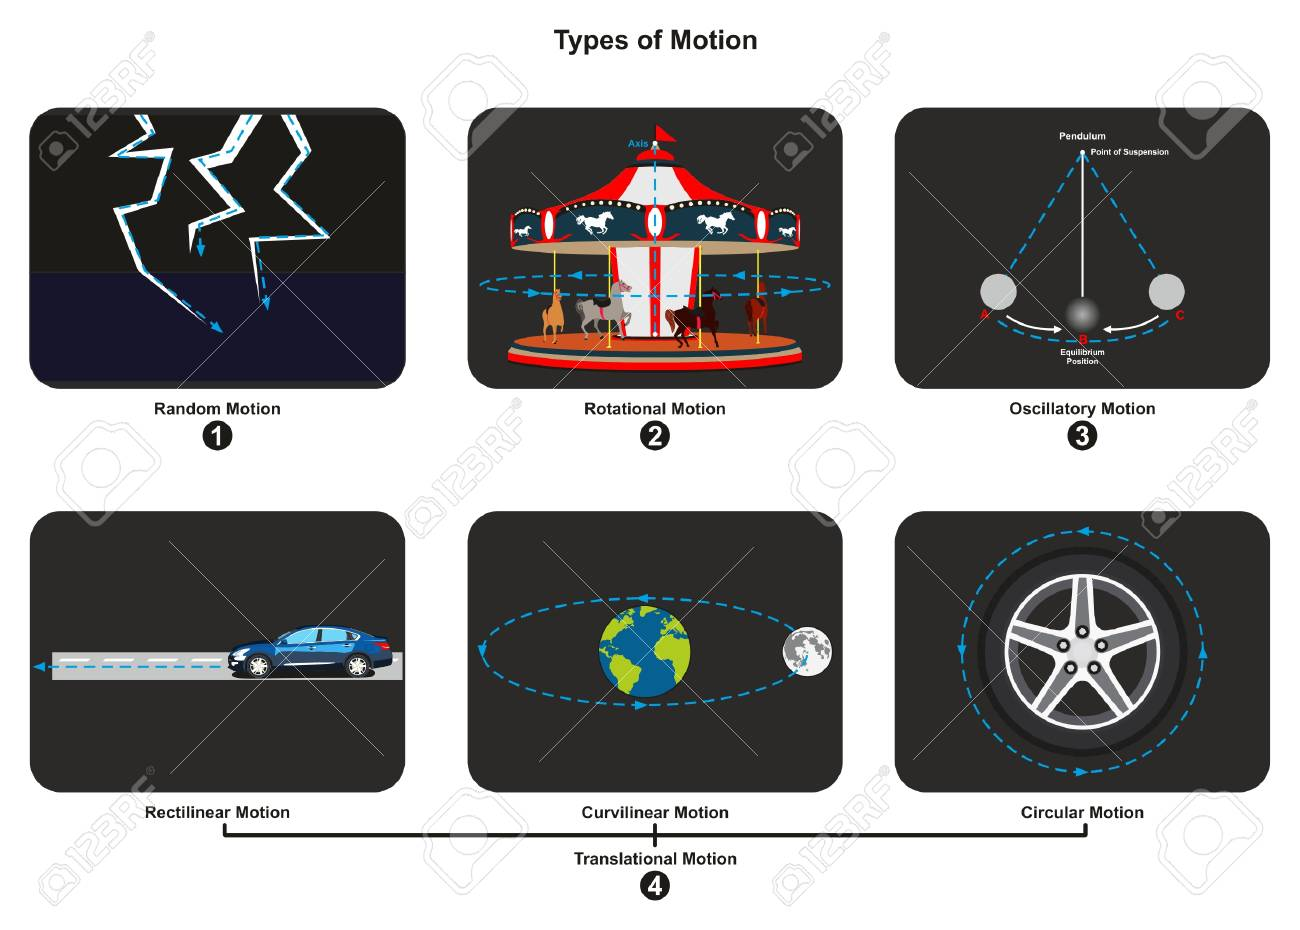 Types of motion infographic diagram with an example of each type types of motion infographic diagram with an example of each type including random rotational oscillatory translational ccuart Choice Image